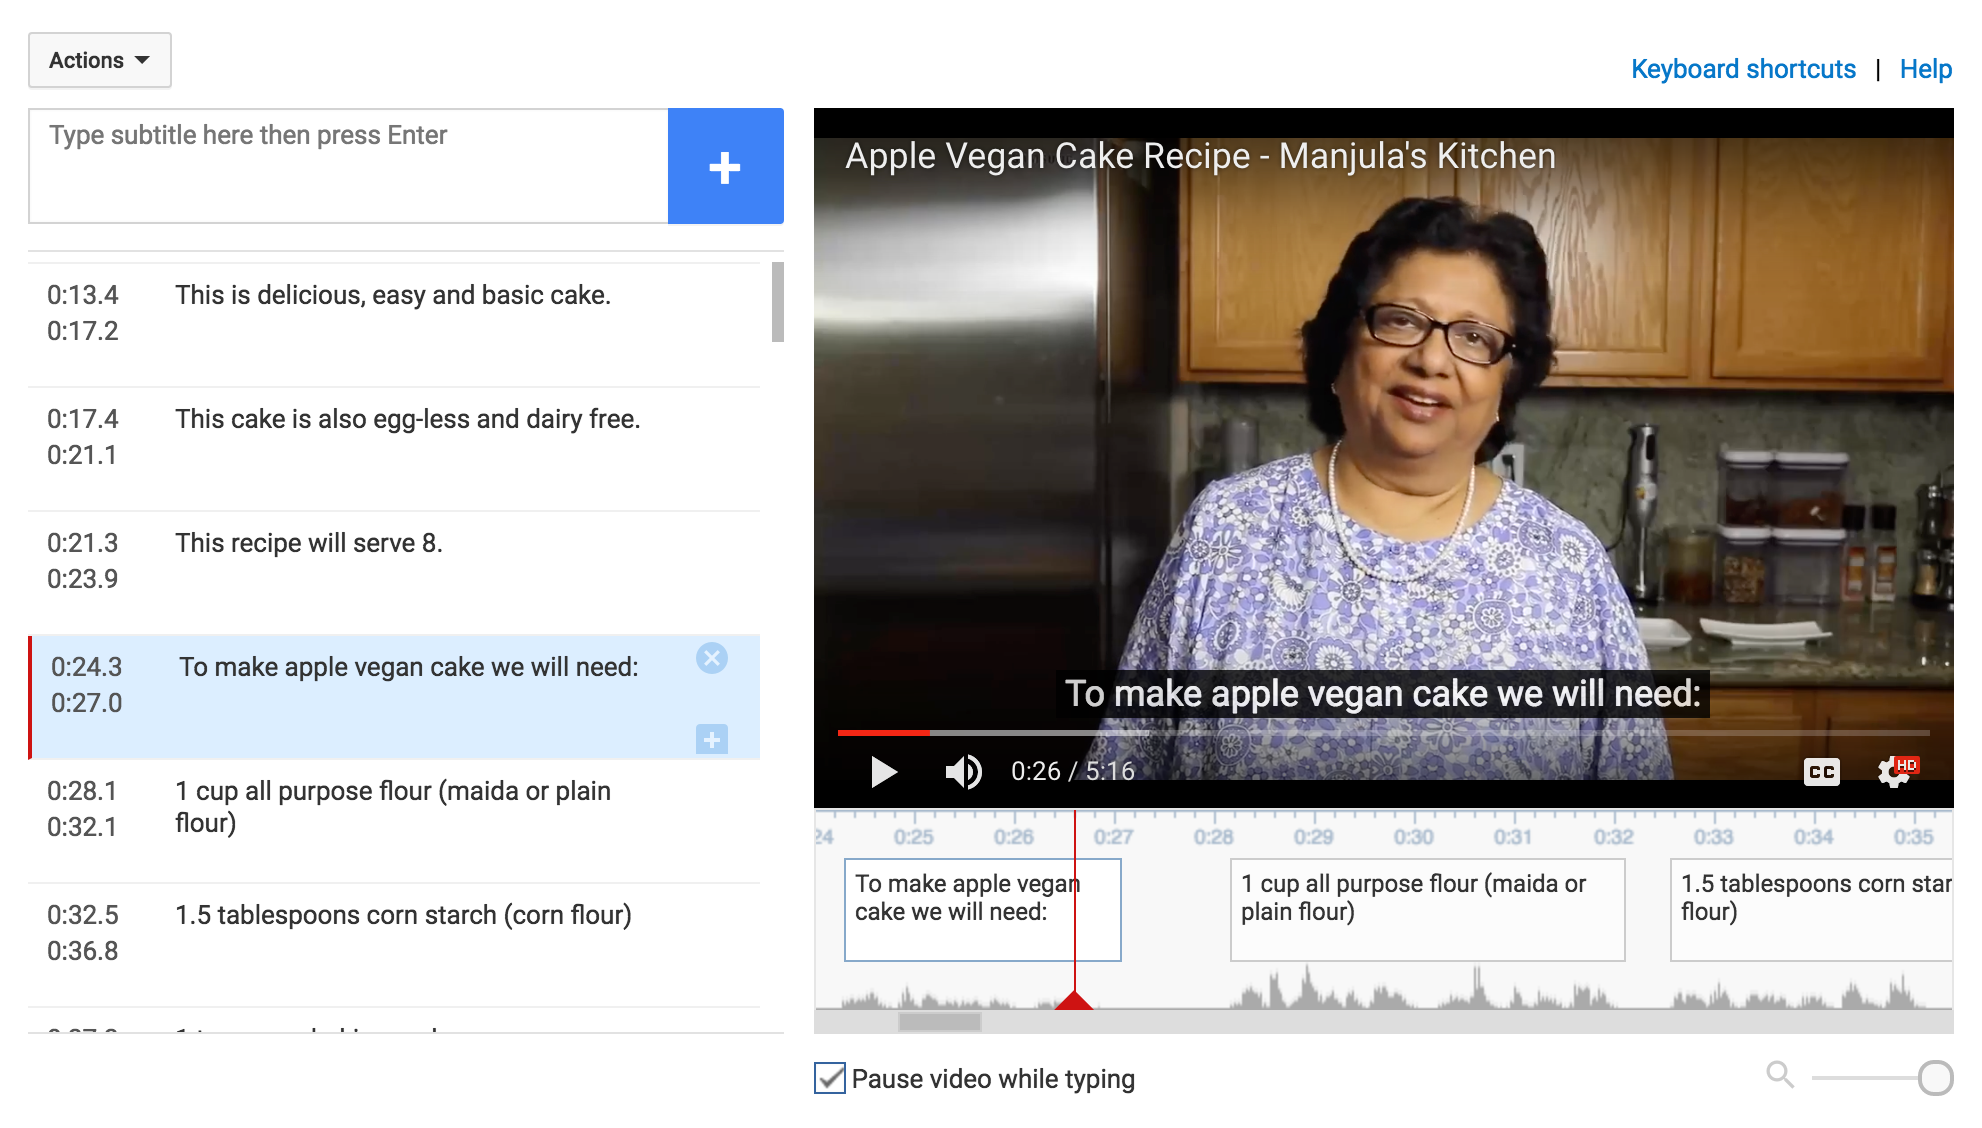 YouTube CC tool is one of the best if you want to transcribe the text yourself.